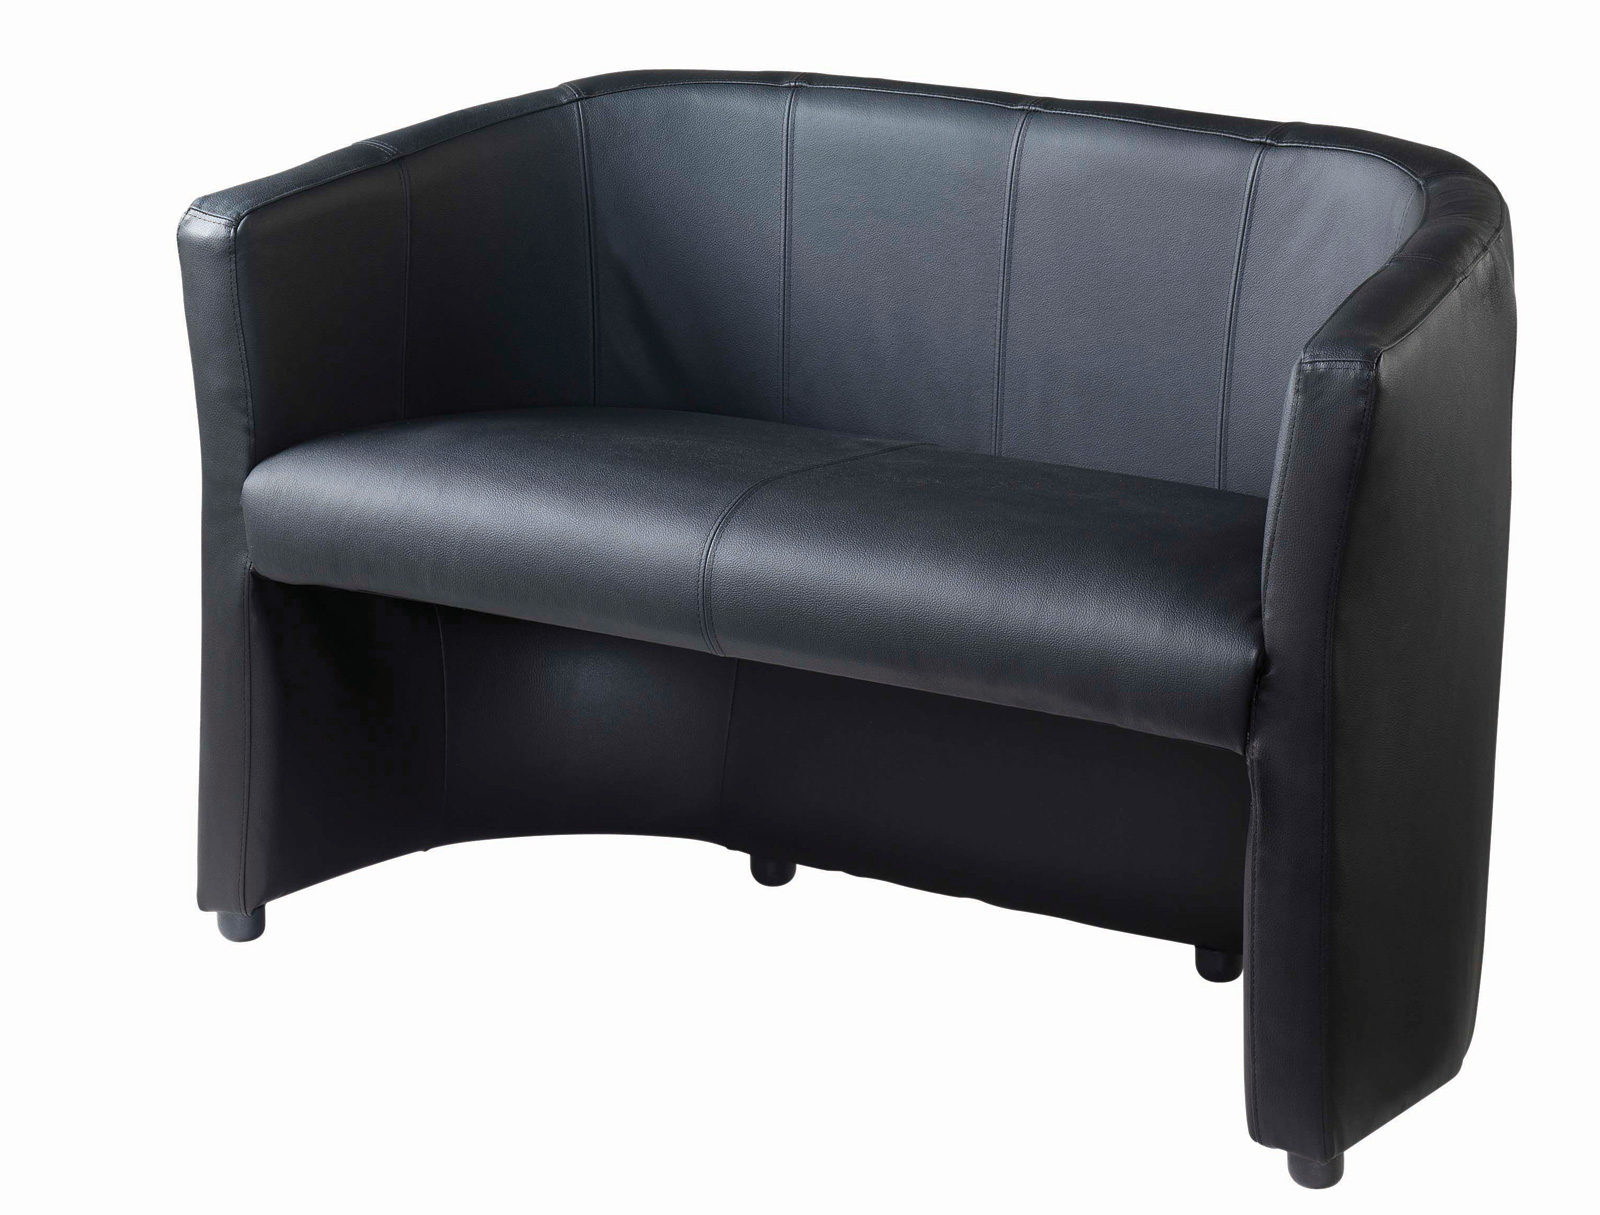 London Optical Sofa Chairs For Well Known London Leather Faced Reception Seating 2 Seater: Www (View 6 of 20)